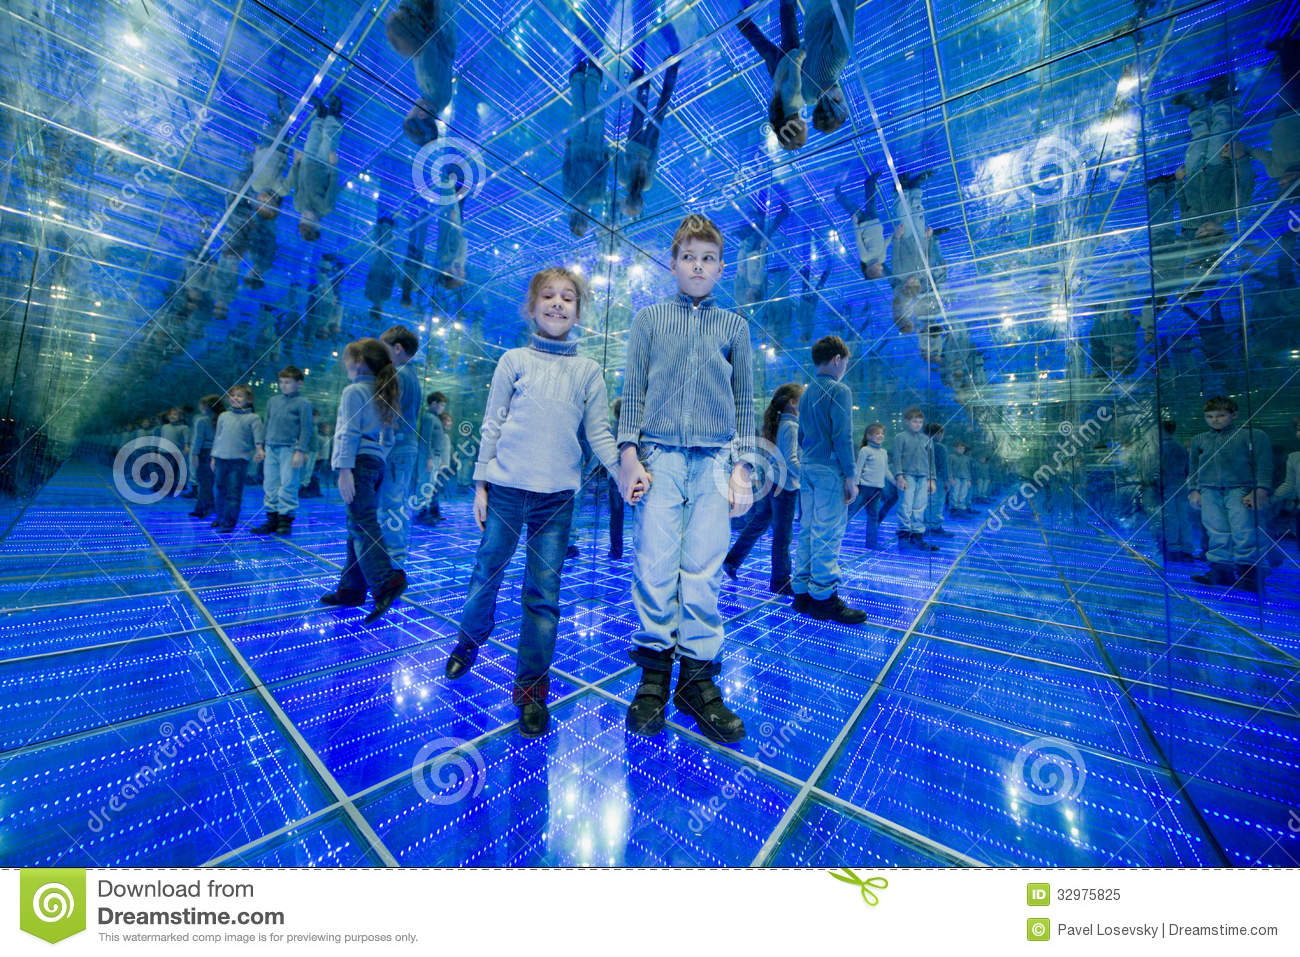 Boy and girl standing in a mirrored room